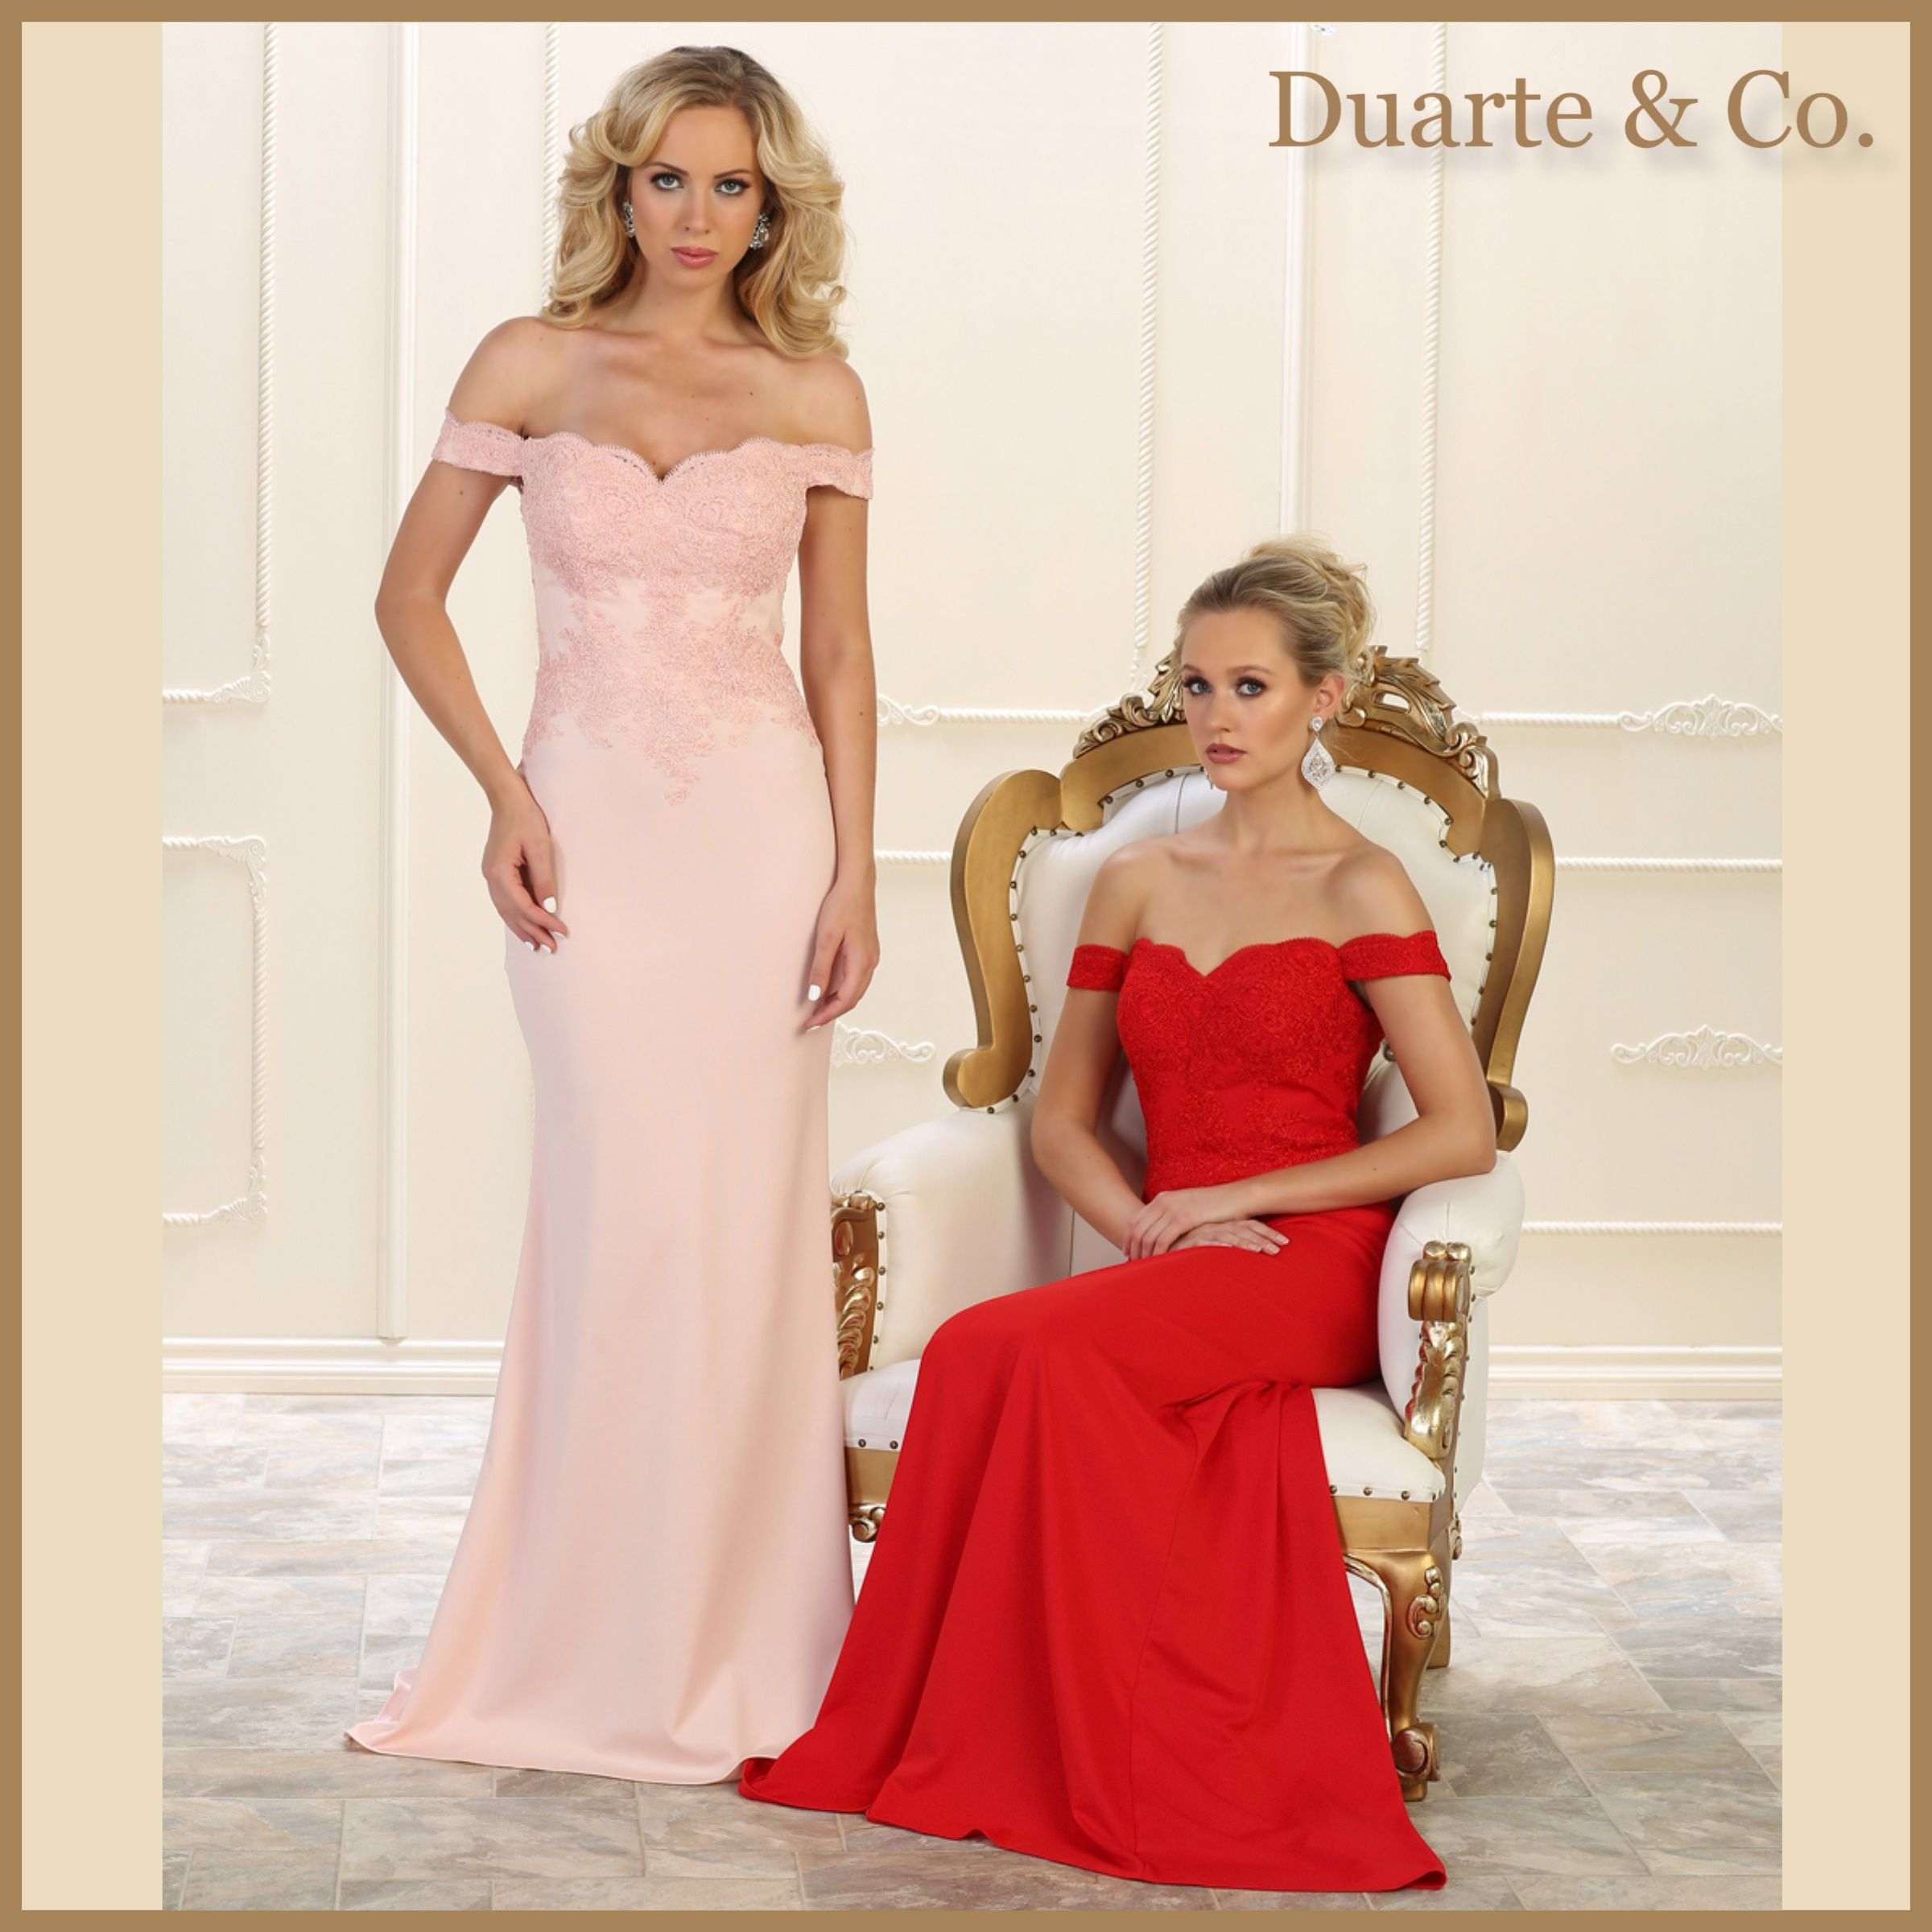 be141b61a16 LC215292  121.00 Off Shoulder Party Dress Plus Sizes Available Comes in 13  Colors. Available in PLUS SIZES 2 to size 26.